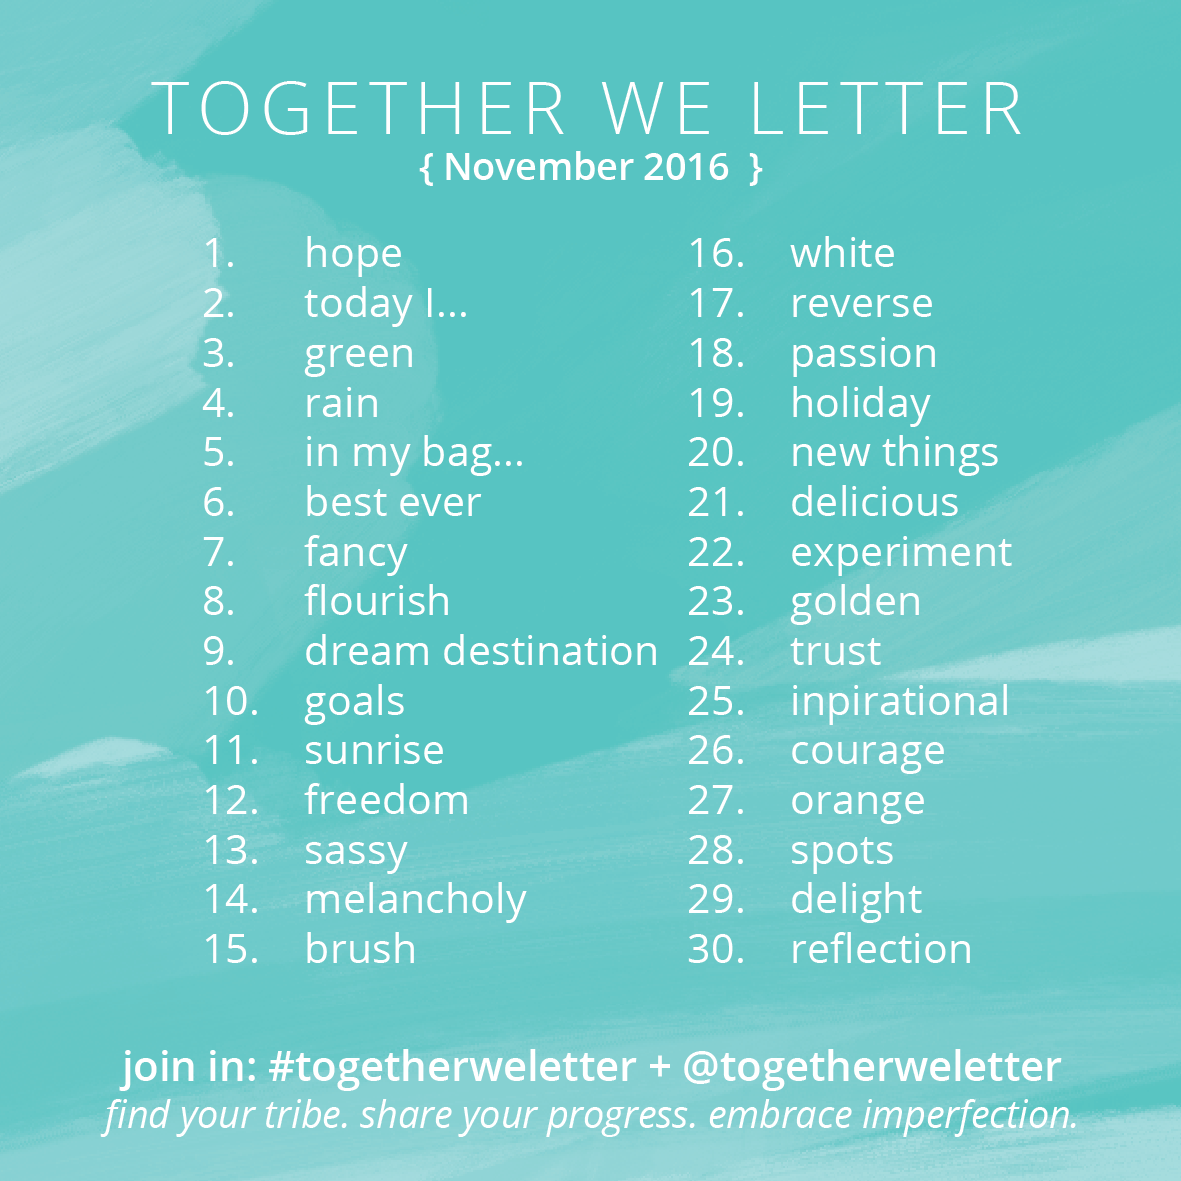 Together We Letter : November 2016